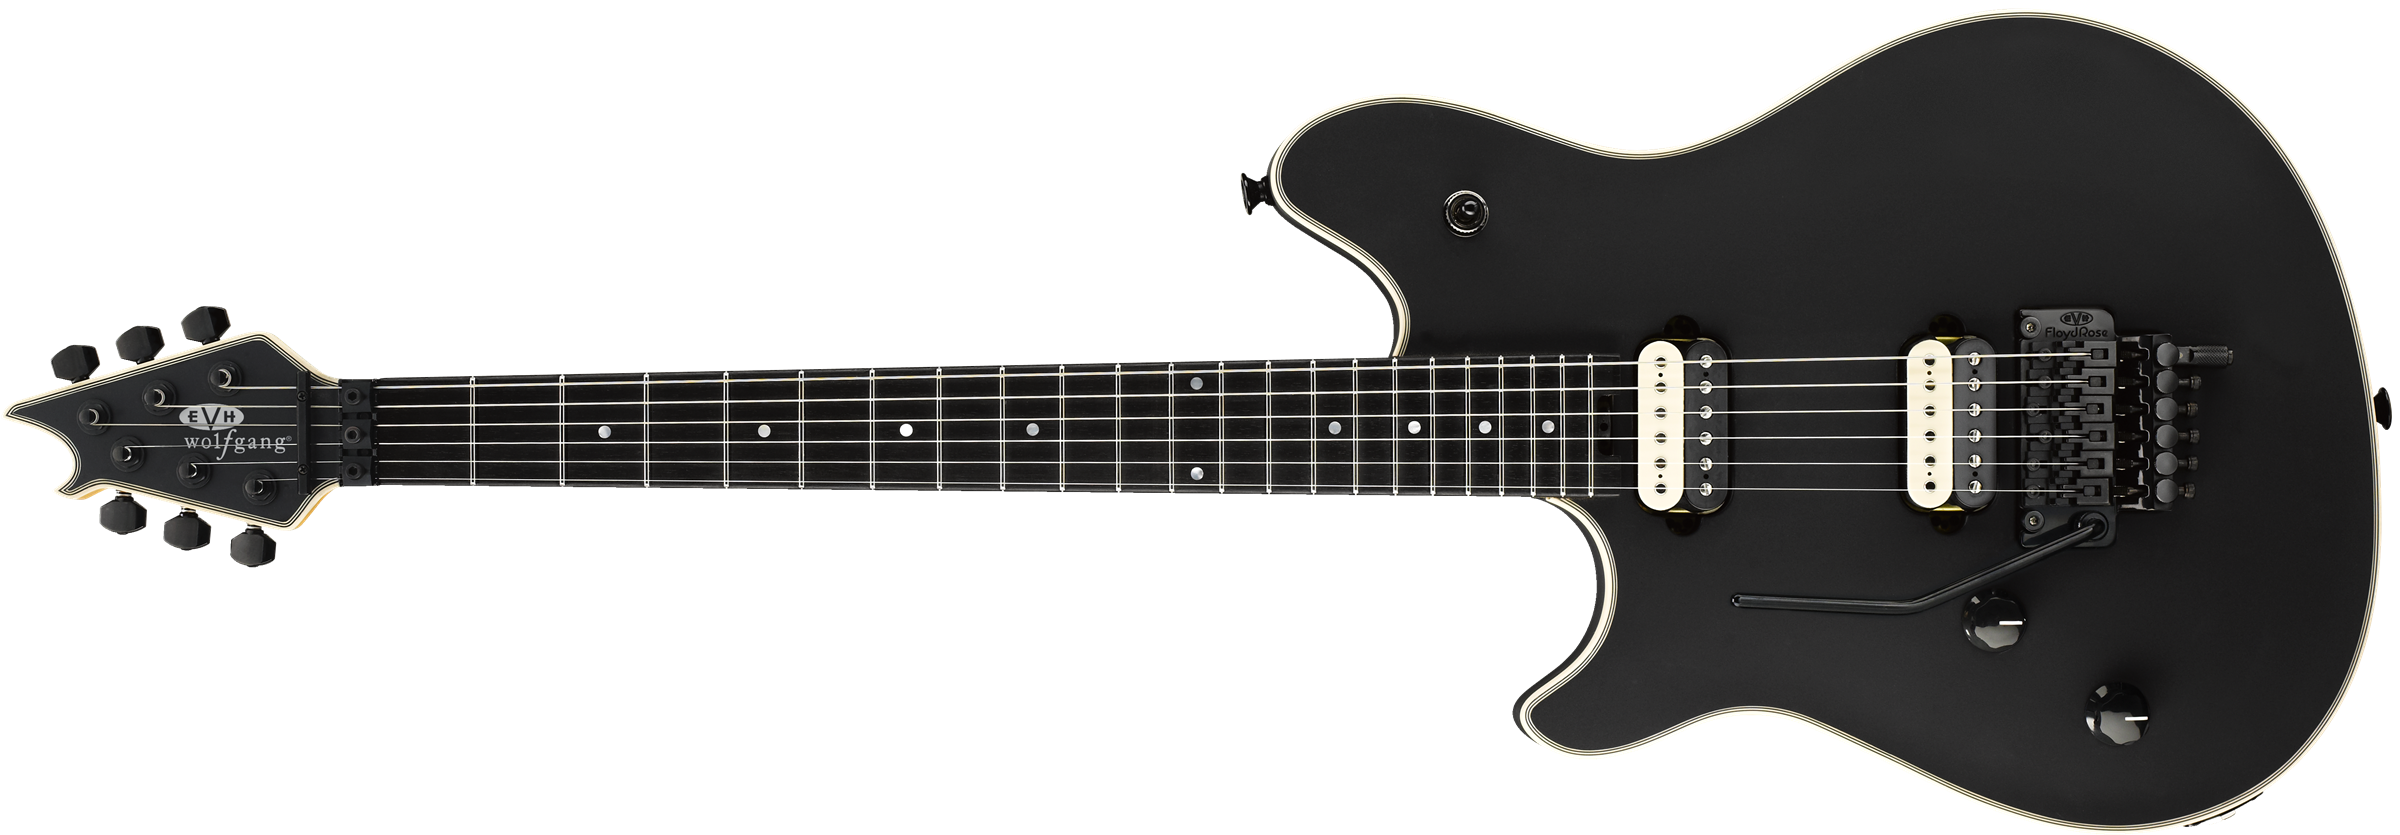 EVH® Wolfgang® USA Left-Hand, Ebony Fingerboard, Stealth Black